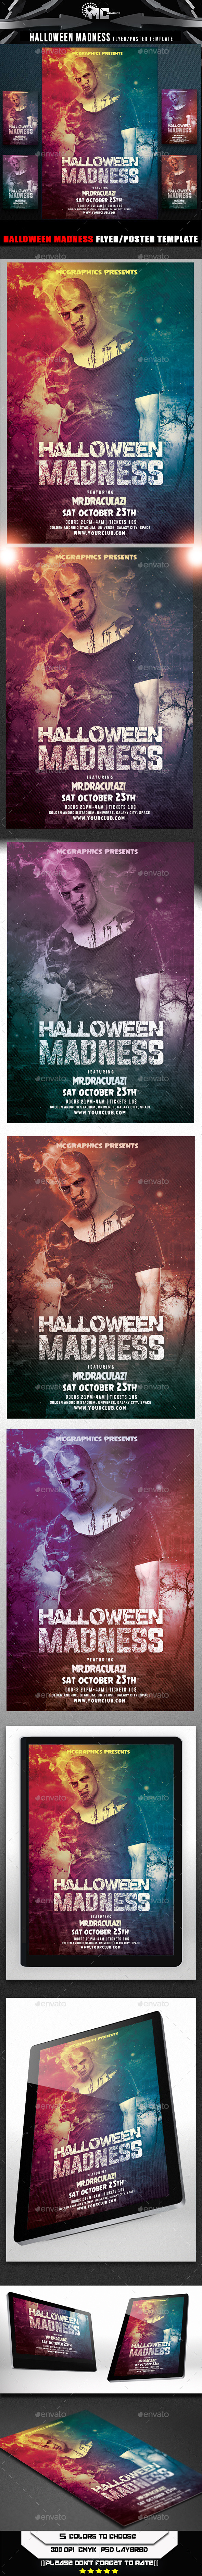 GraphicRiver Halloween Madness Flyer Template 9178762